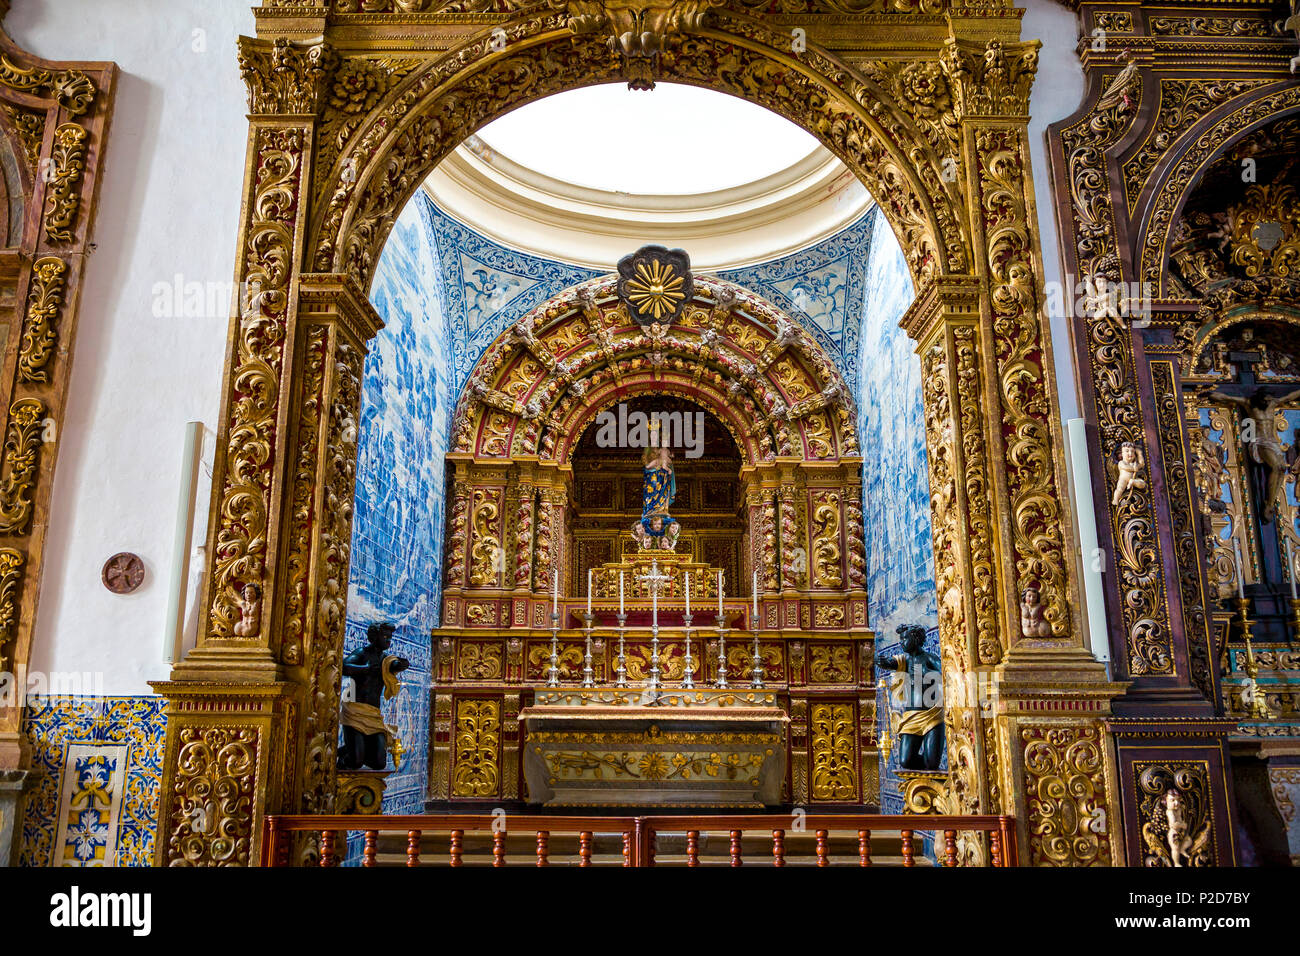 Interior view of the altar in Se Cathedral, Faro, Algarve, Portugal - Stock Image